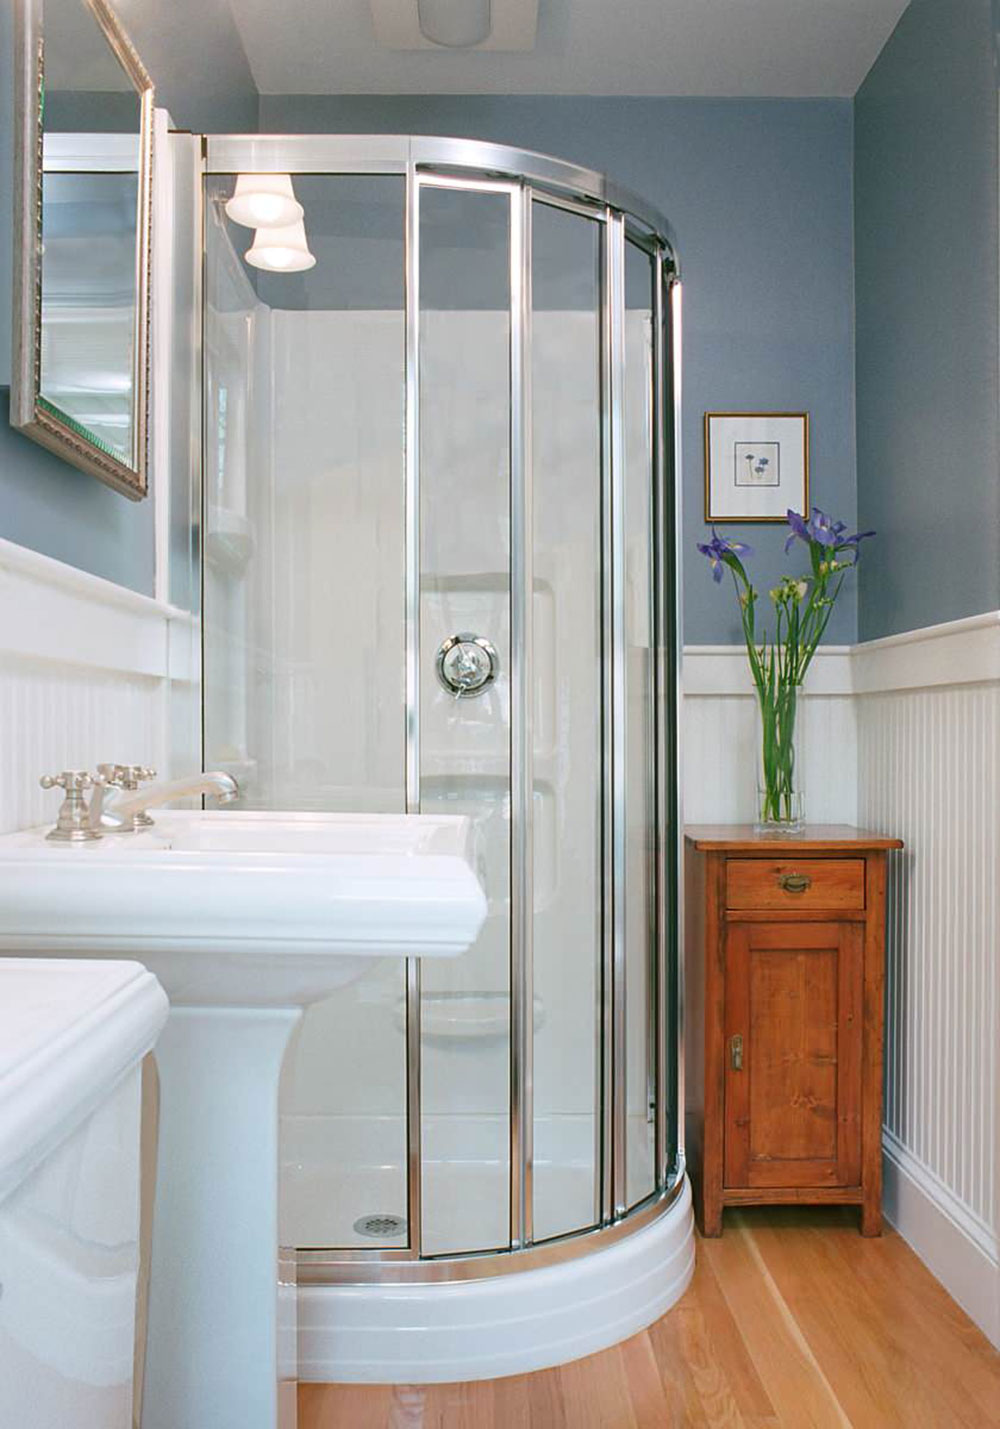 Contemporary Bathroom Ideas To Modernize This Room